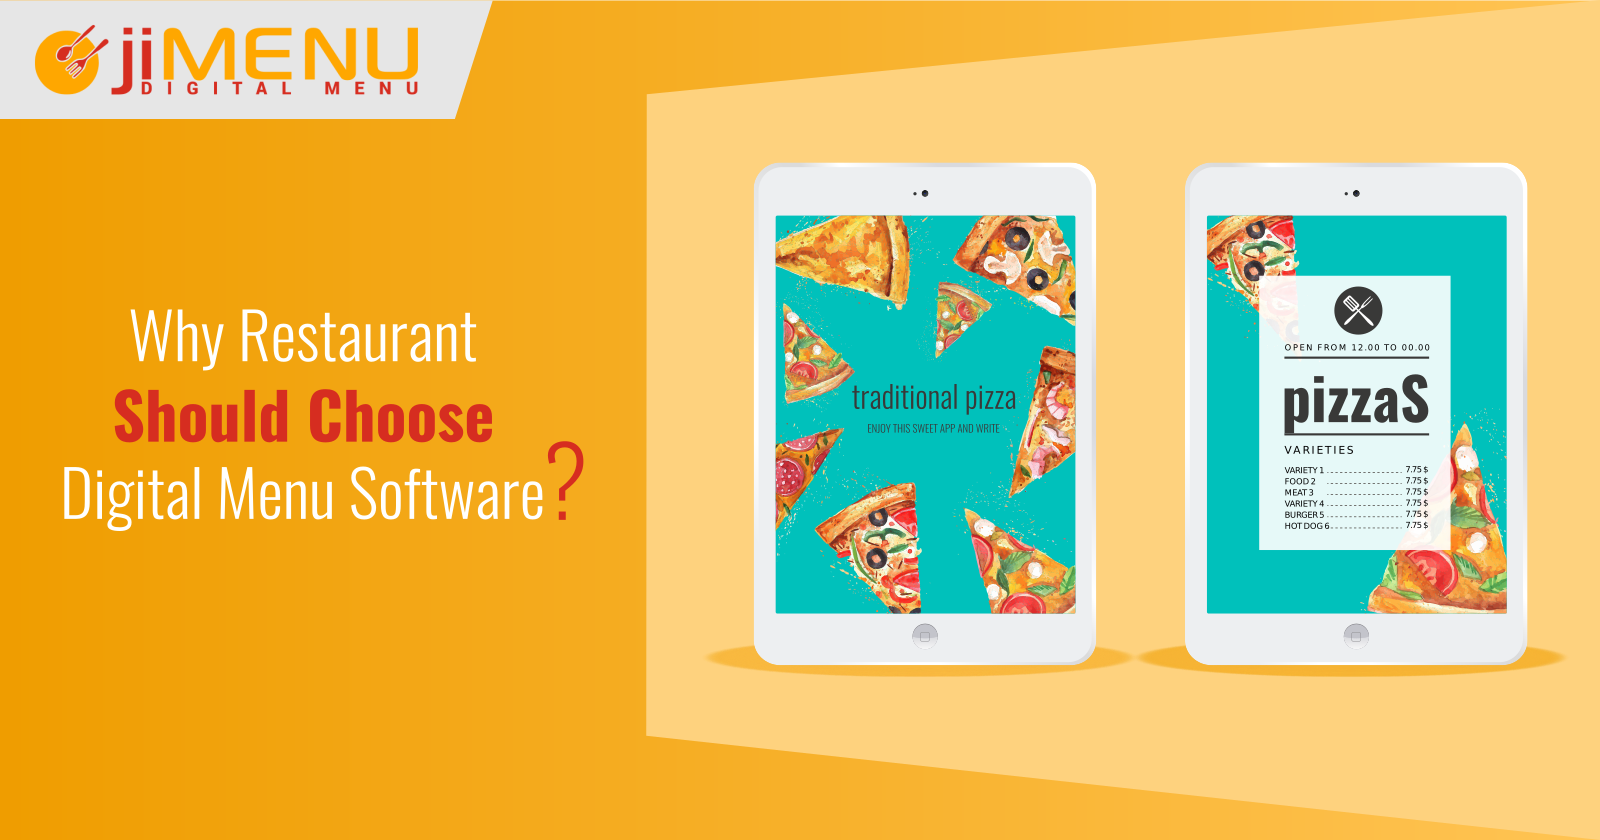 Why Restaurant Should Choose Digital Menu Software?